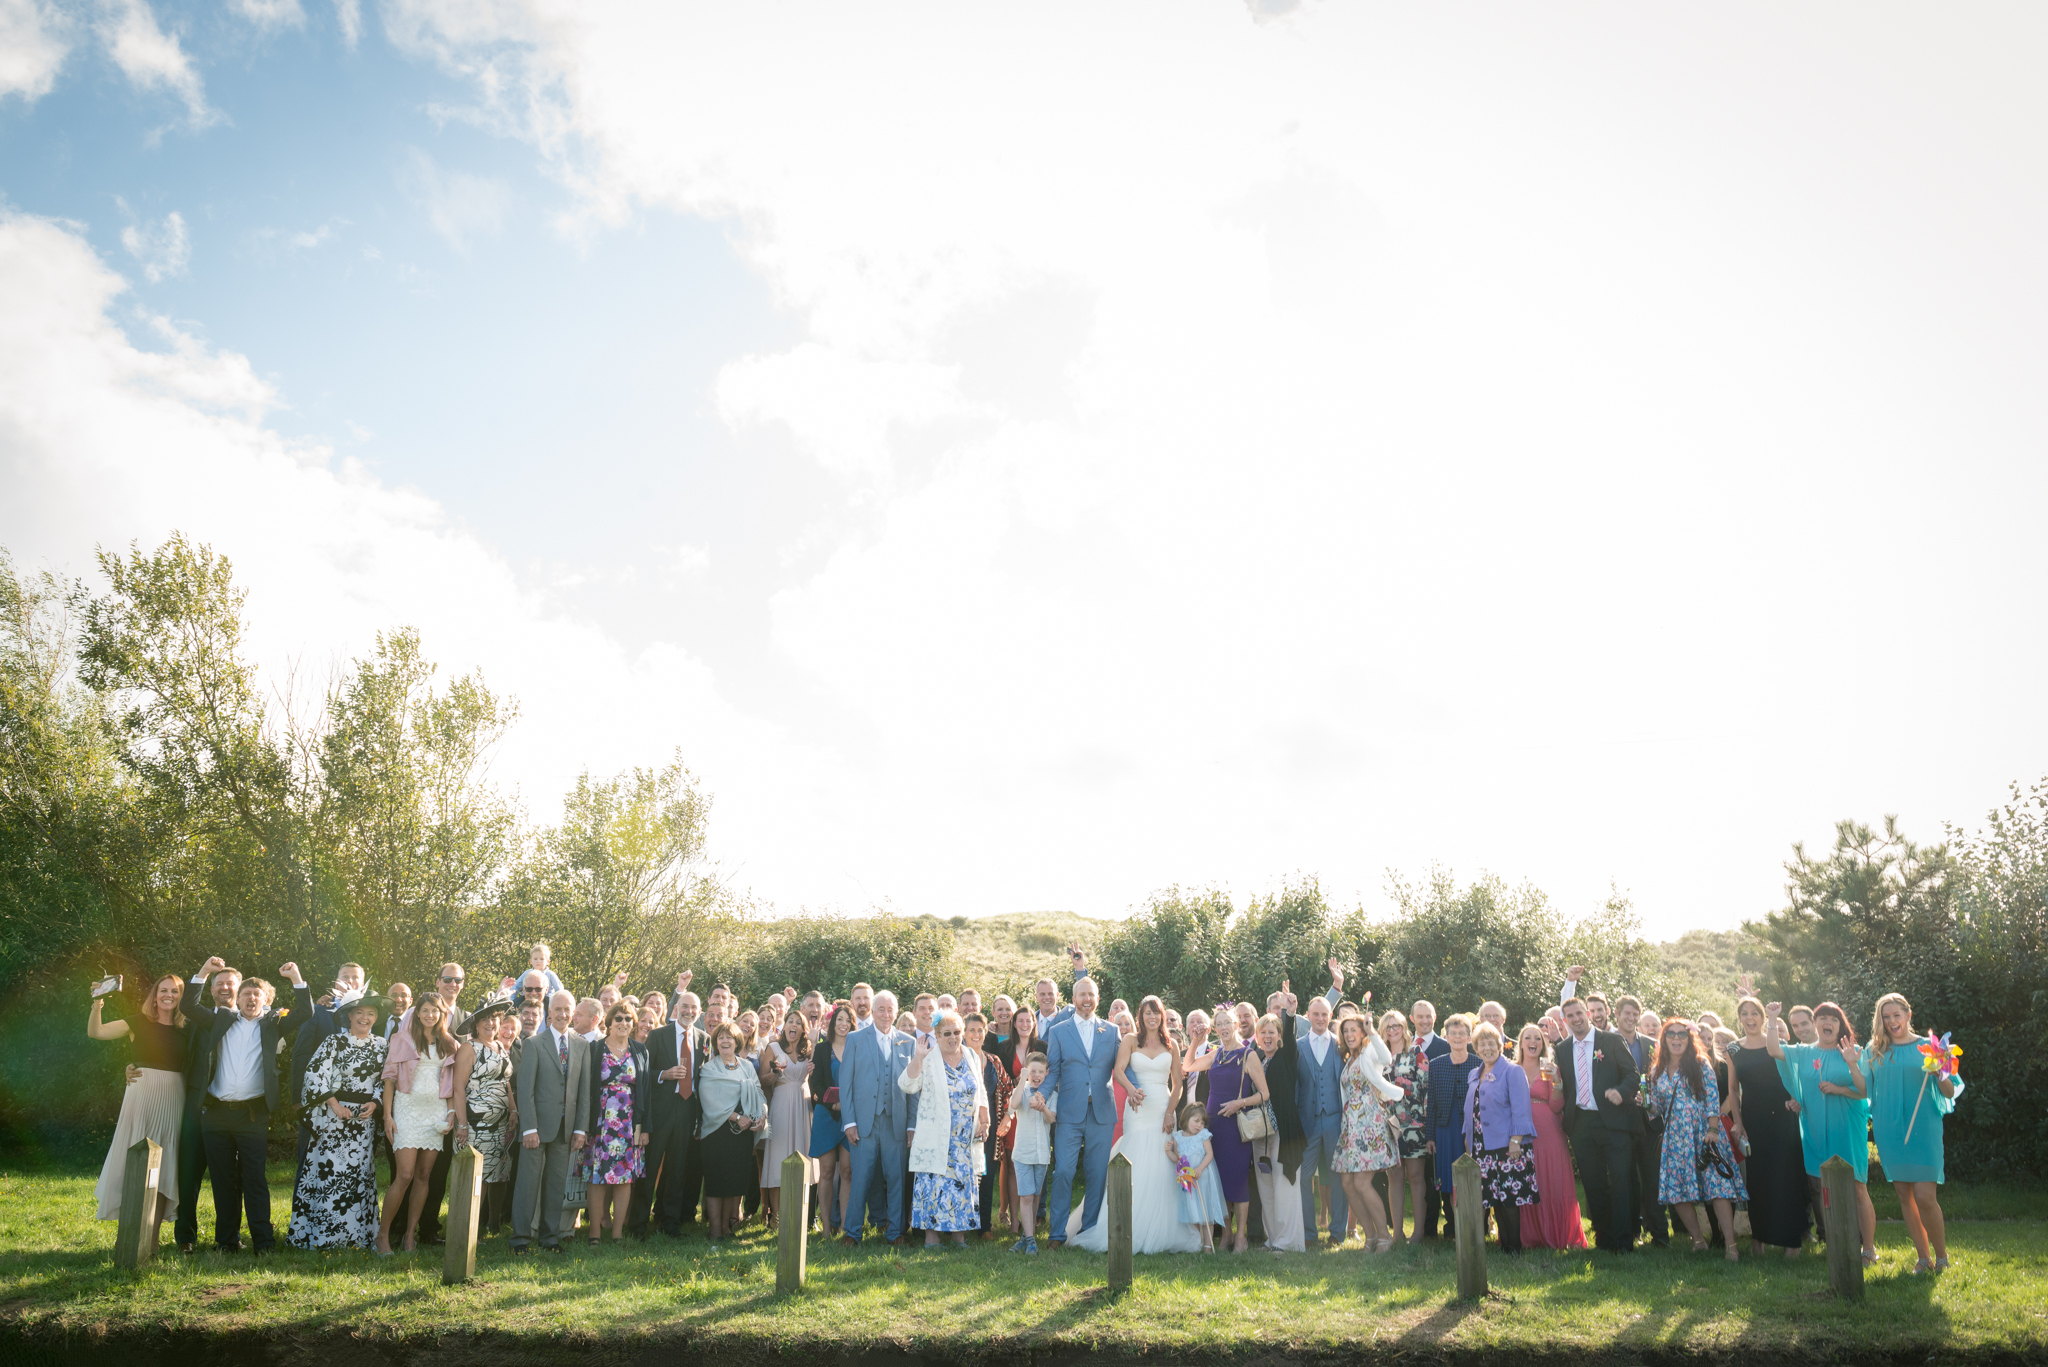 camber-sands-wedding-11.jpg